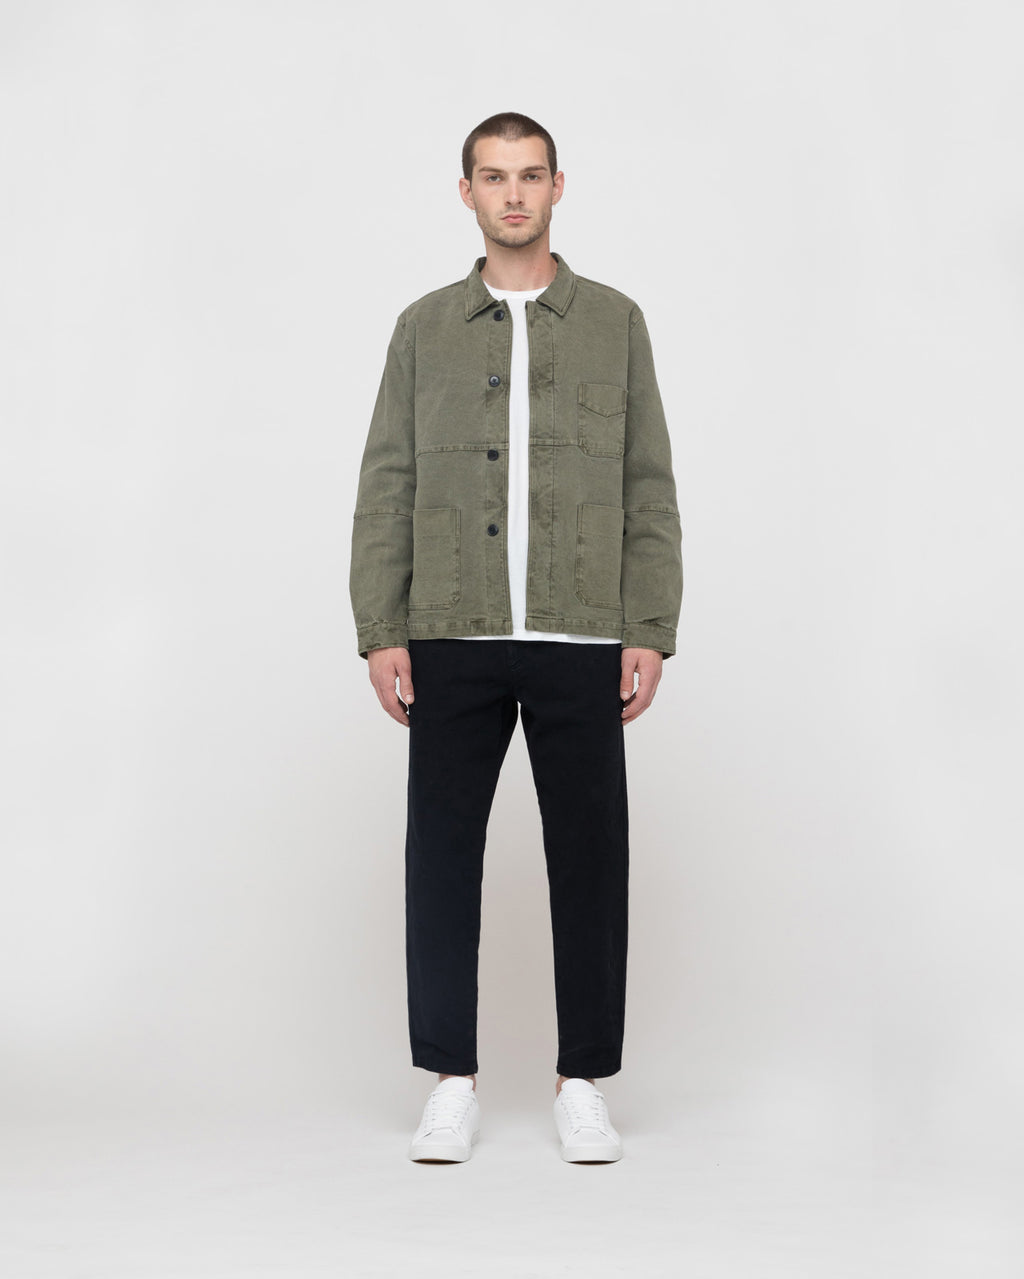 The Bowens Jacket in Vintage Green